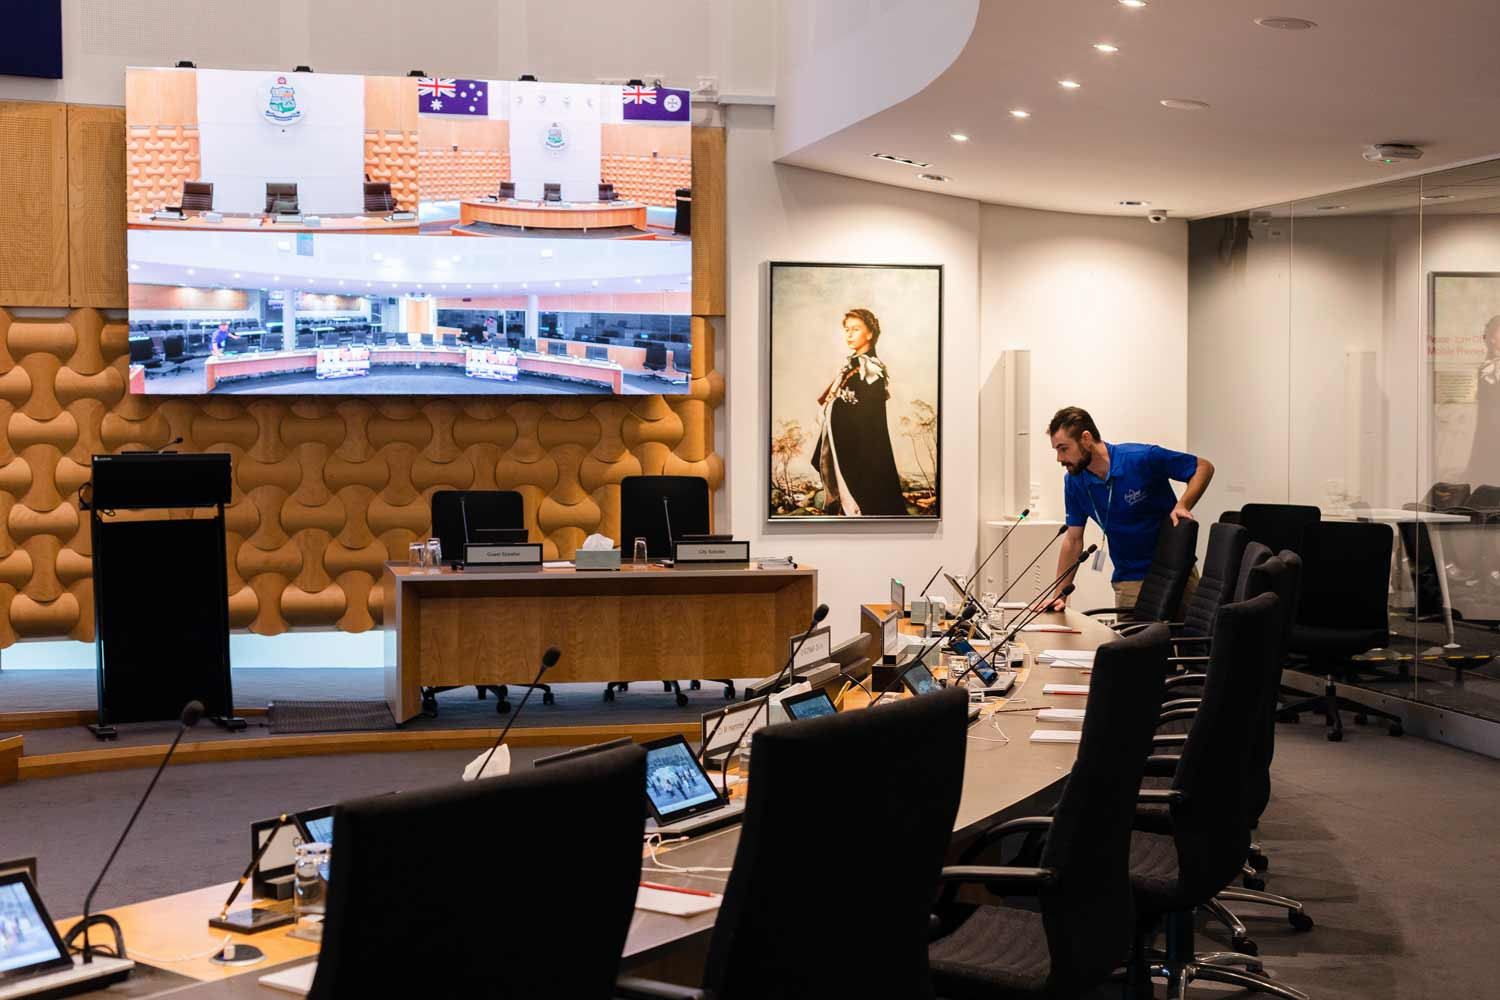 City of Gold Coast Council Chambers